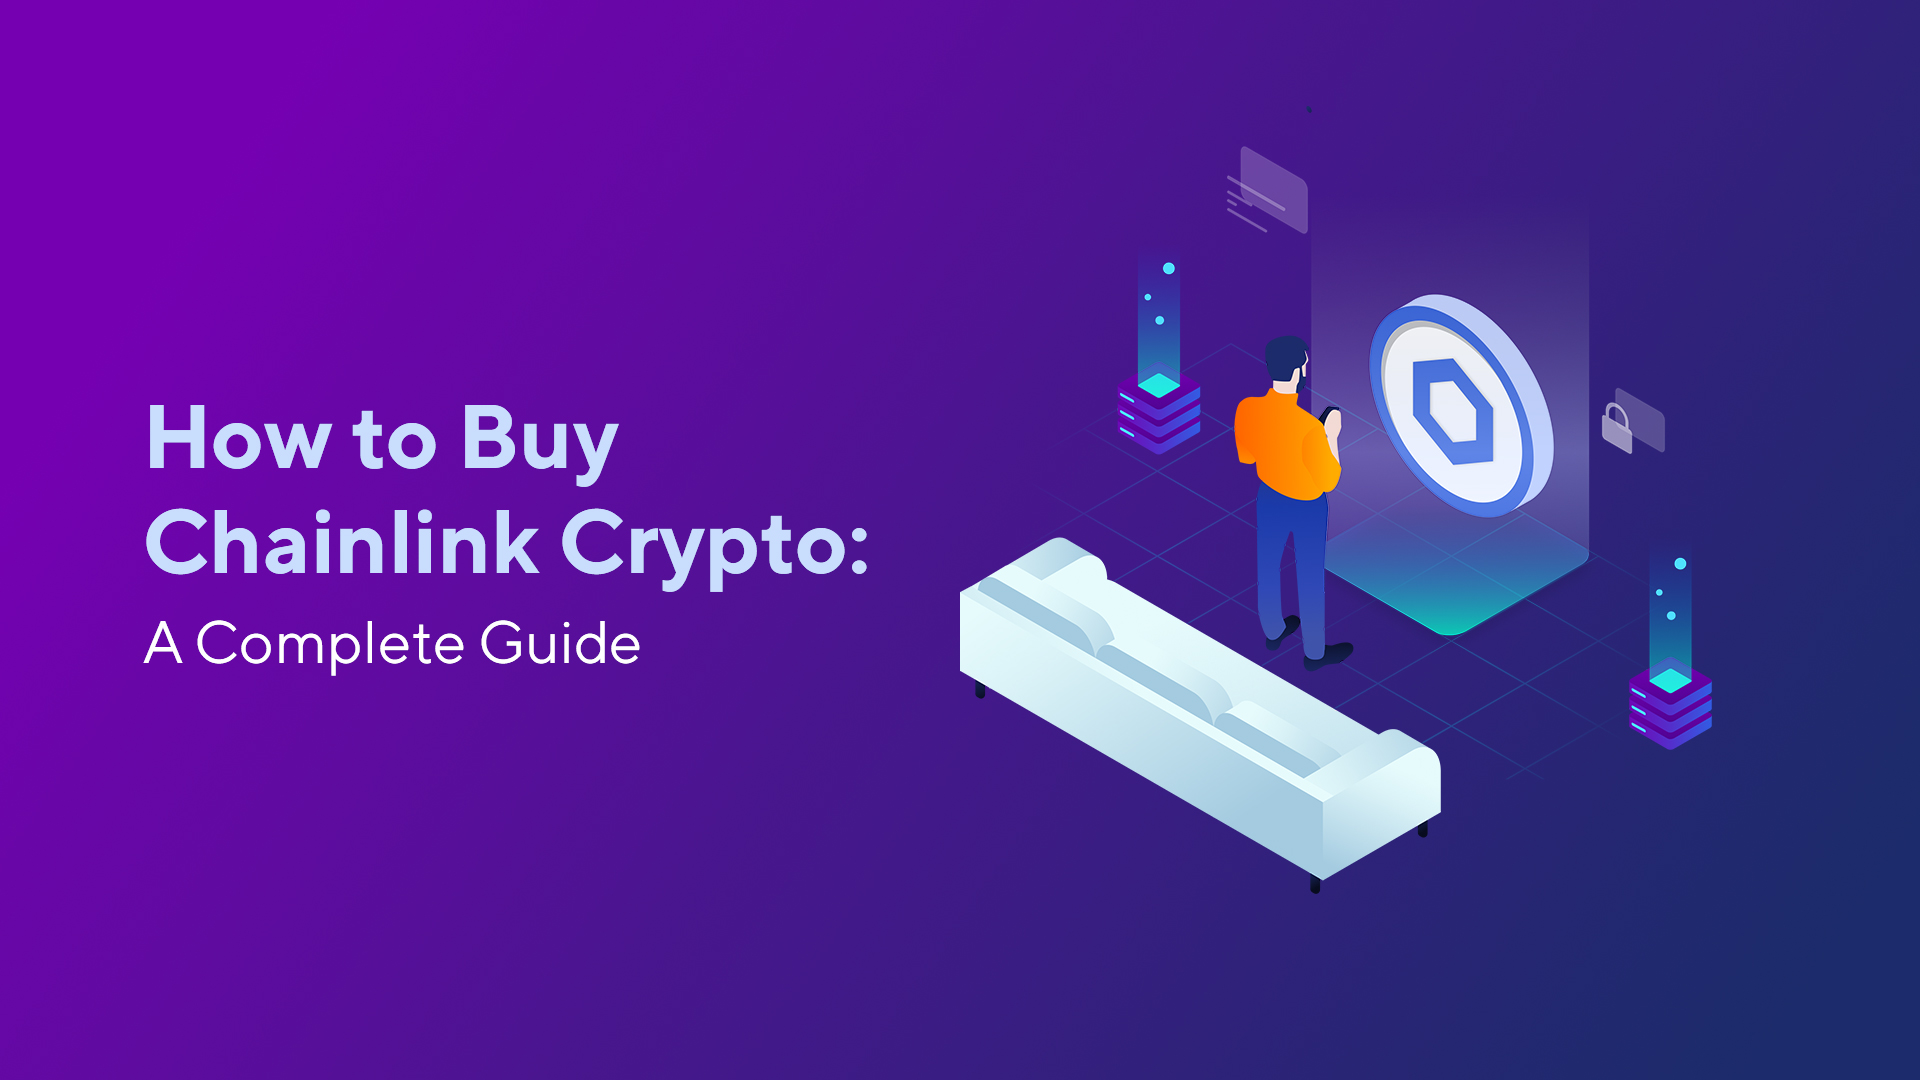 How to Buy Chainlink Crypto: A Complete Guide